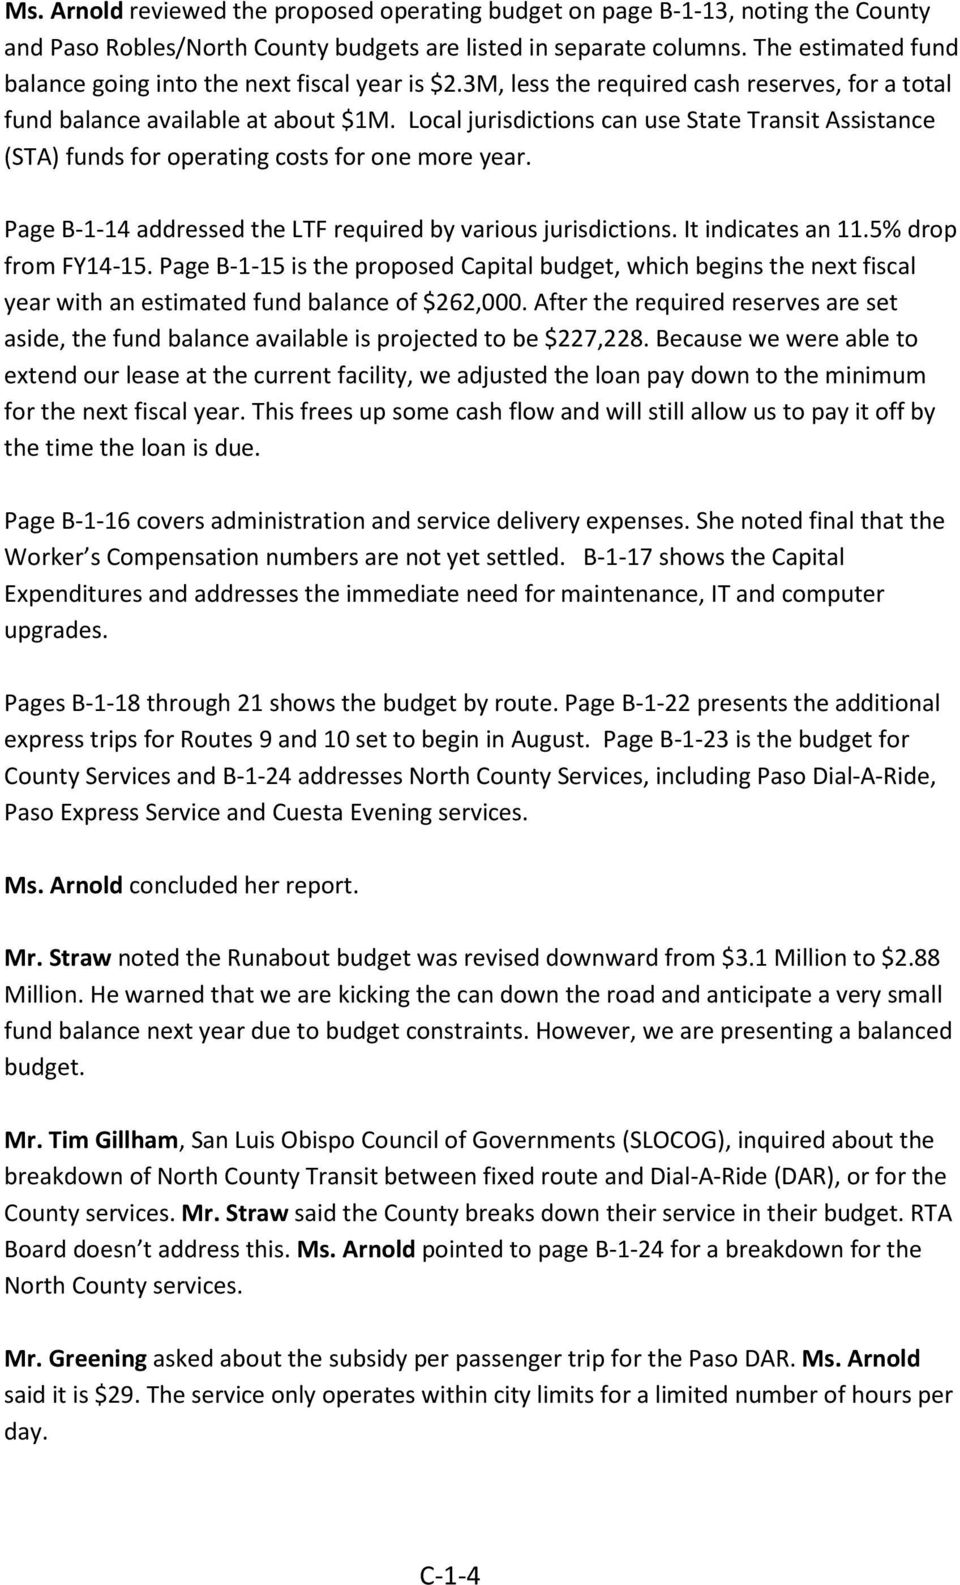 Local jurisdictions can use State Transit Assistance (STA) funds for operating costs for one more year. Page B-1-14 addressed the LTF required by various jurisdictions. It indicates an 11.